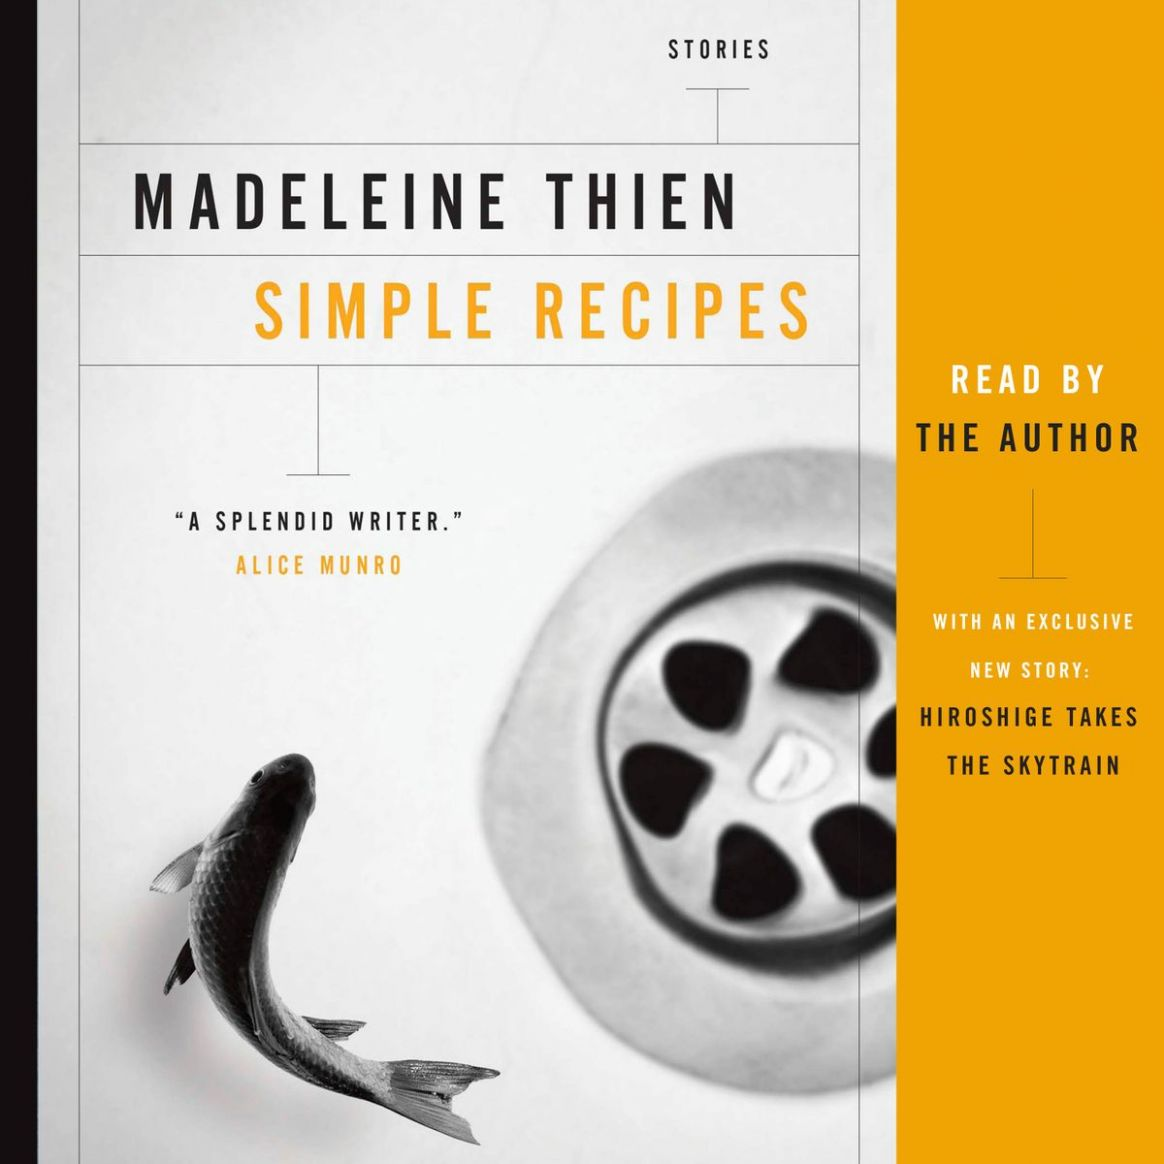 Simple Recipes audiobook by Madeleine Thien - Rakuten Kobo